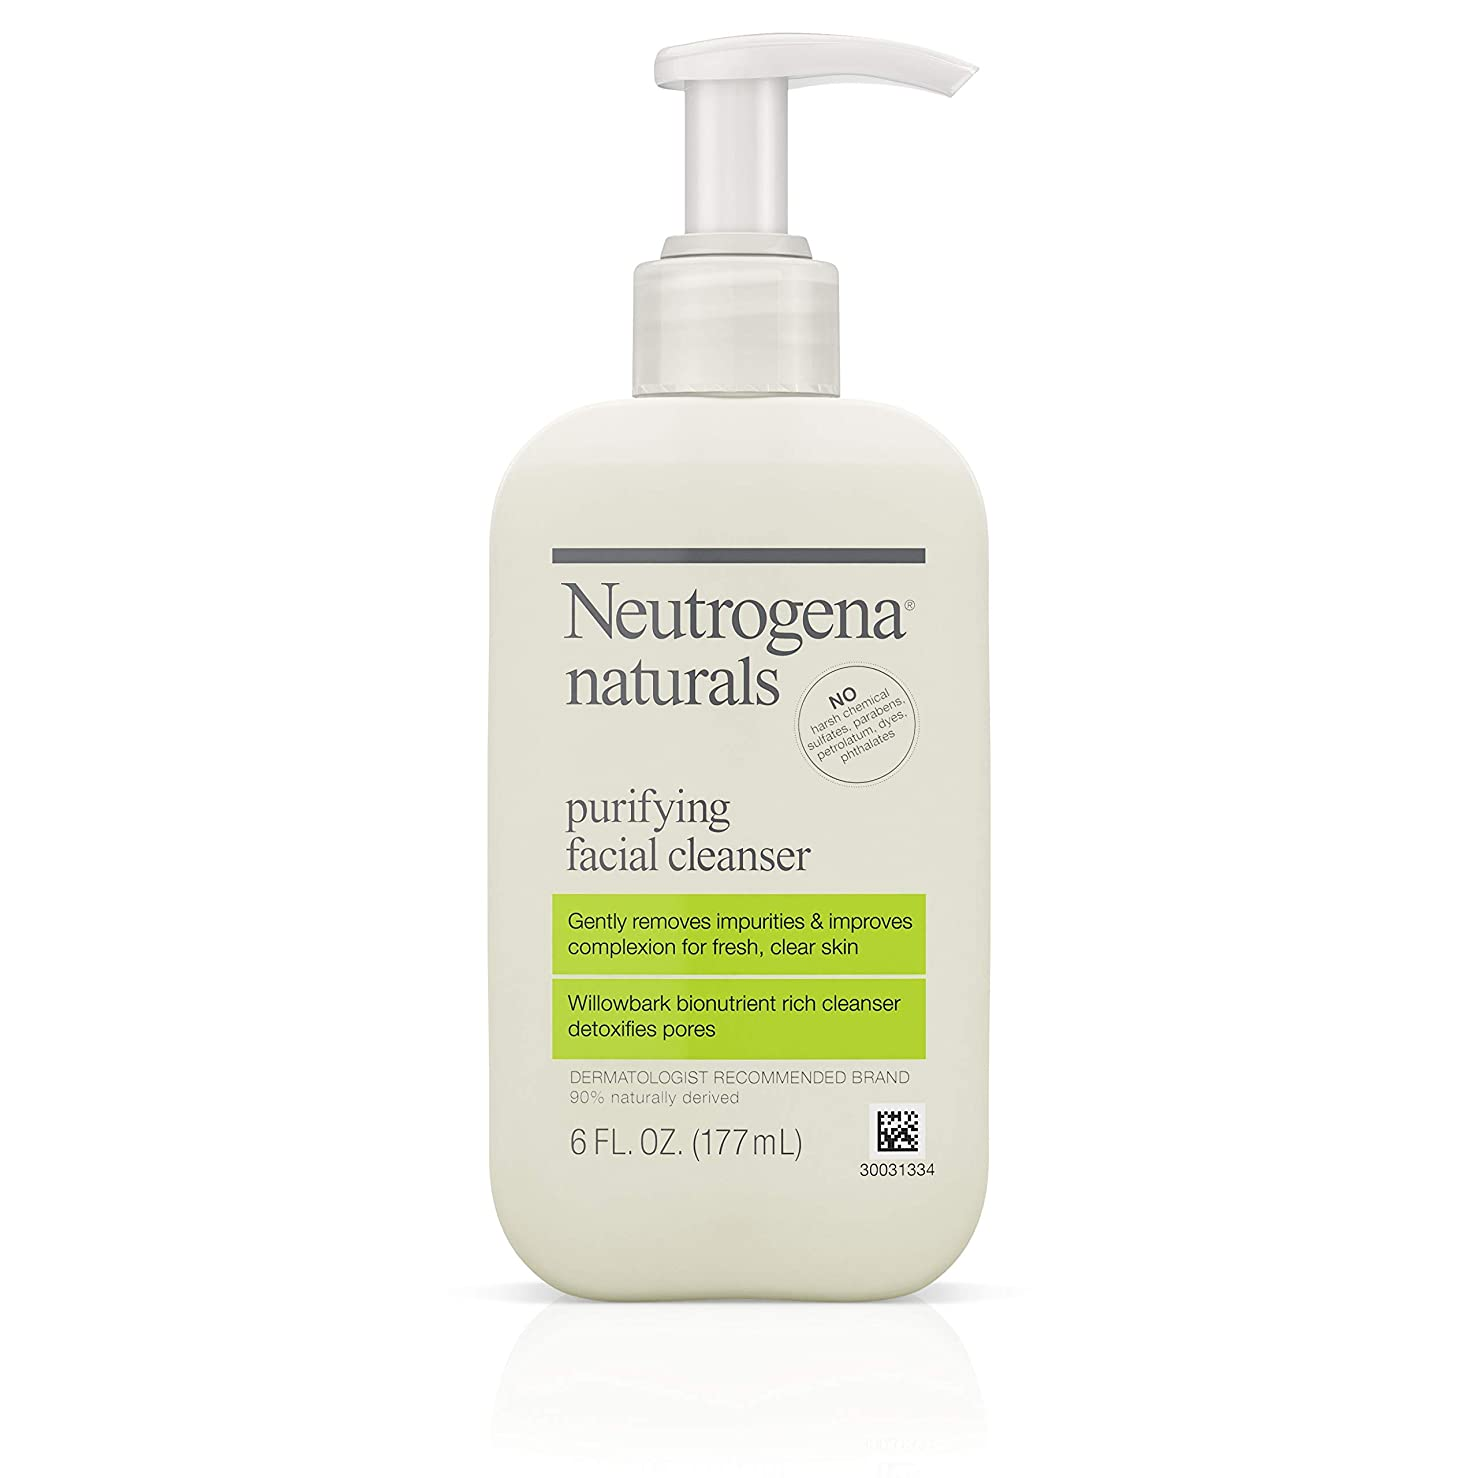 祝福する模倣短くするNeutrogena Naturals Purifying Facial Cleanser 175 ml (並行輸入品)